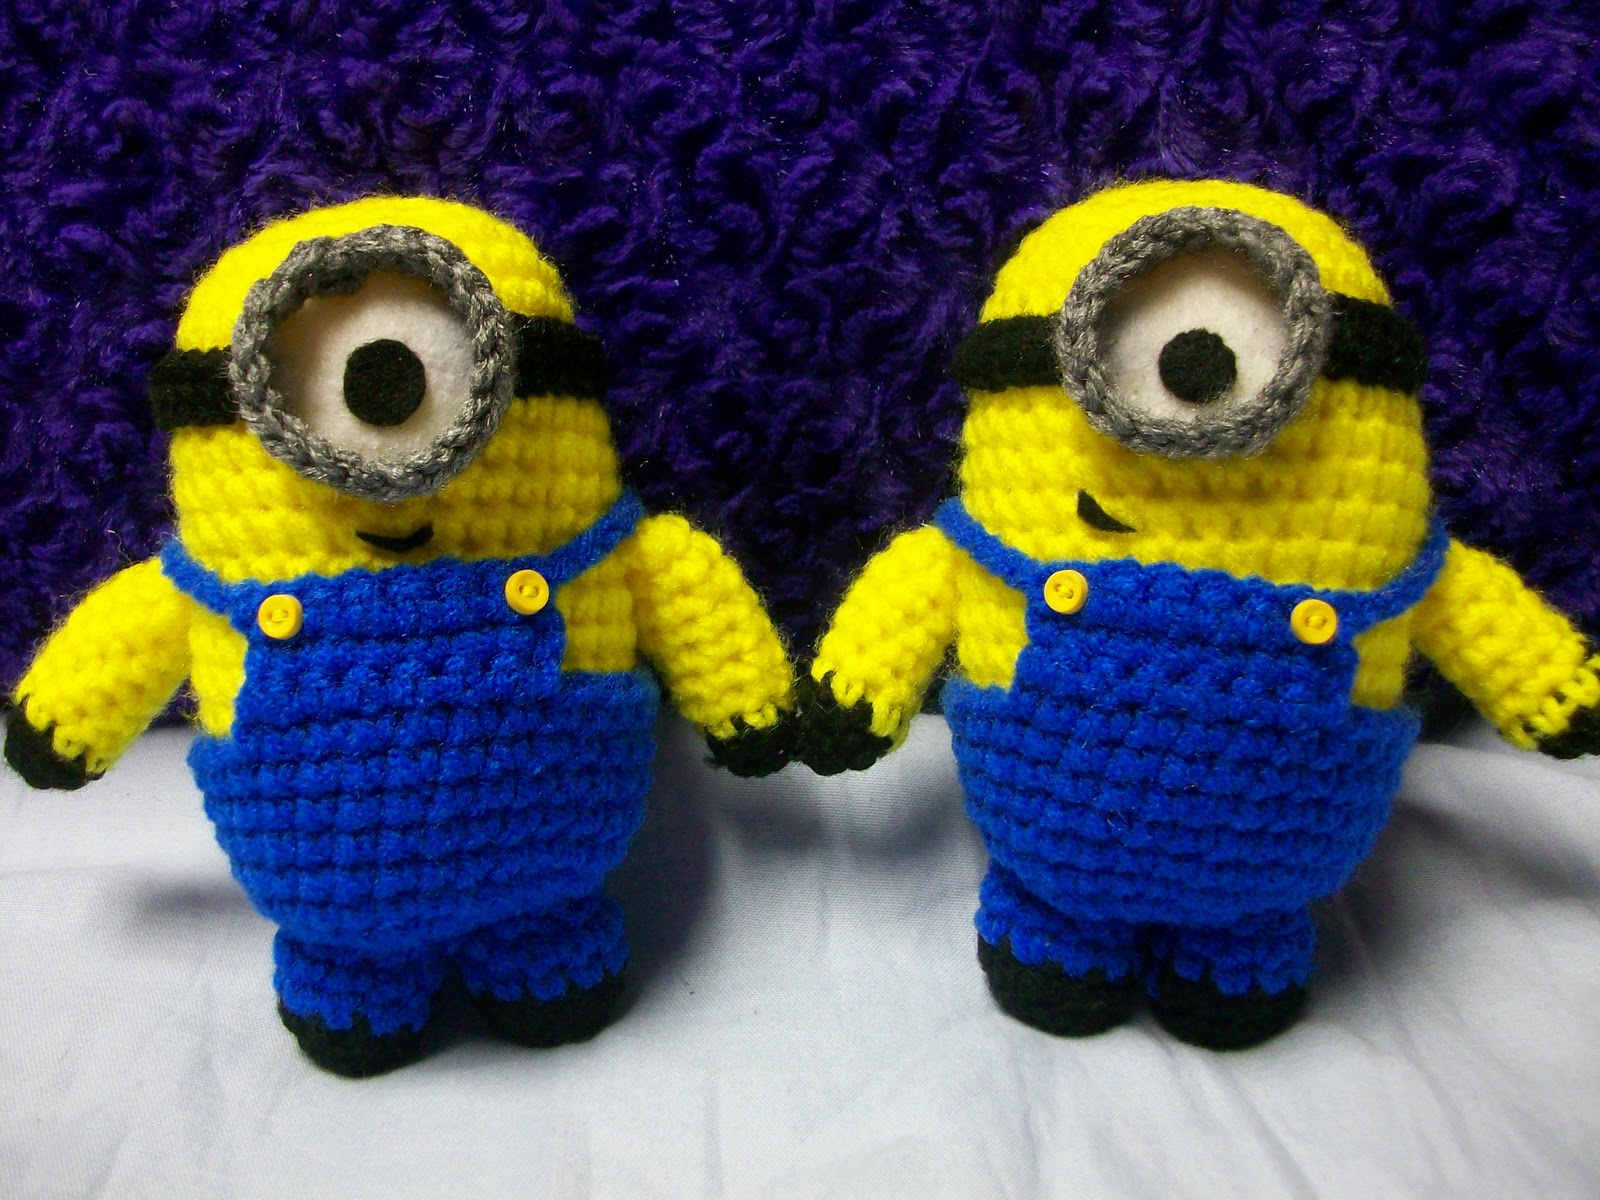 Free Pattern Crochet Minion : 2000 Free Amigurumi Patterns: Free Despicable Me Minion ...